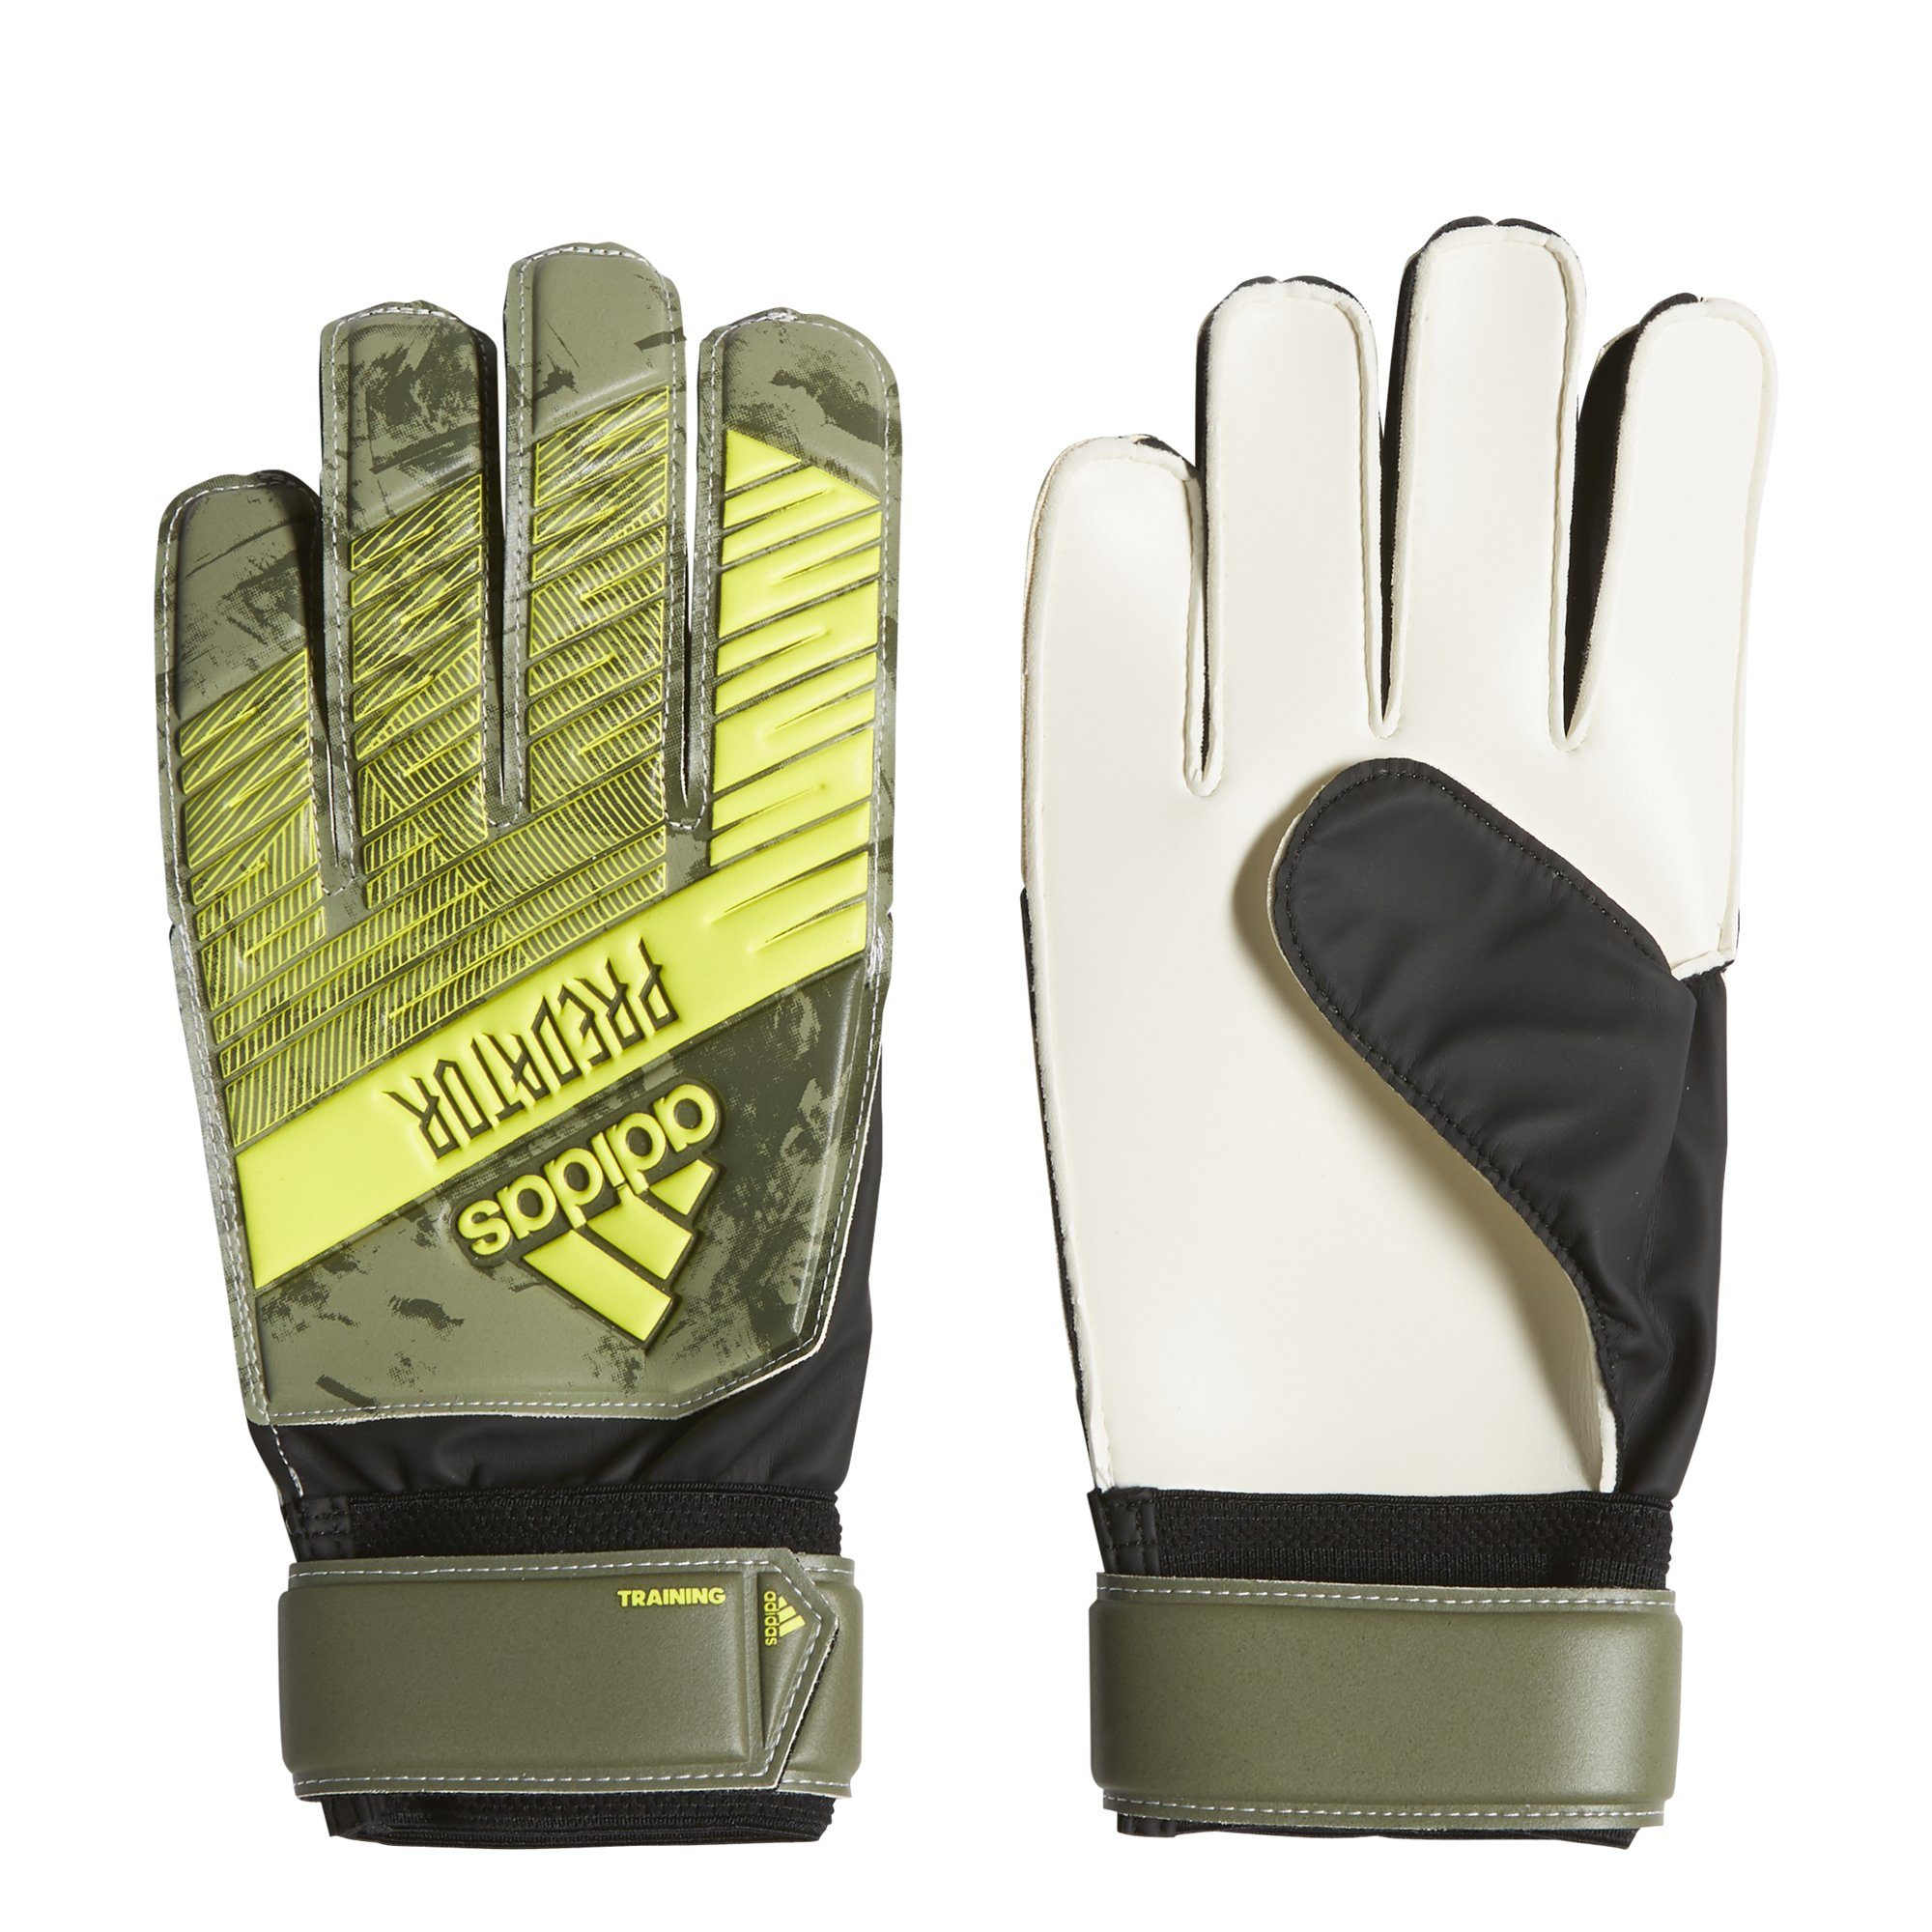 Adidas Predator Training Gloves - raw khaki/TRACE OLIVE F17 SP-ACCESSORIES Adidas